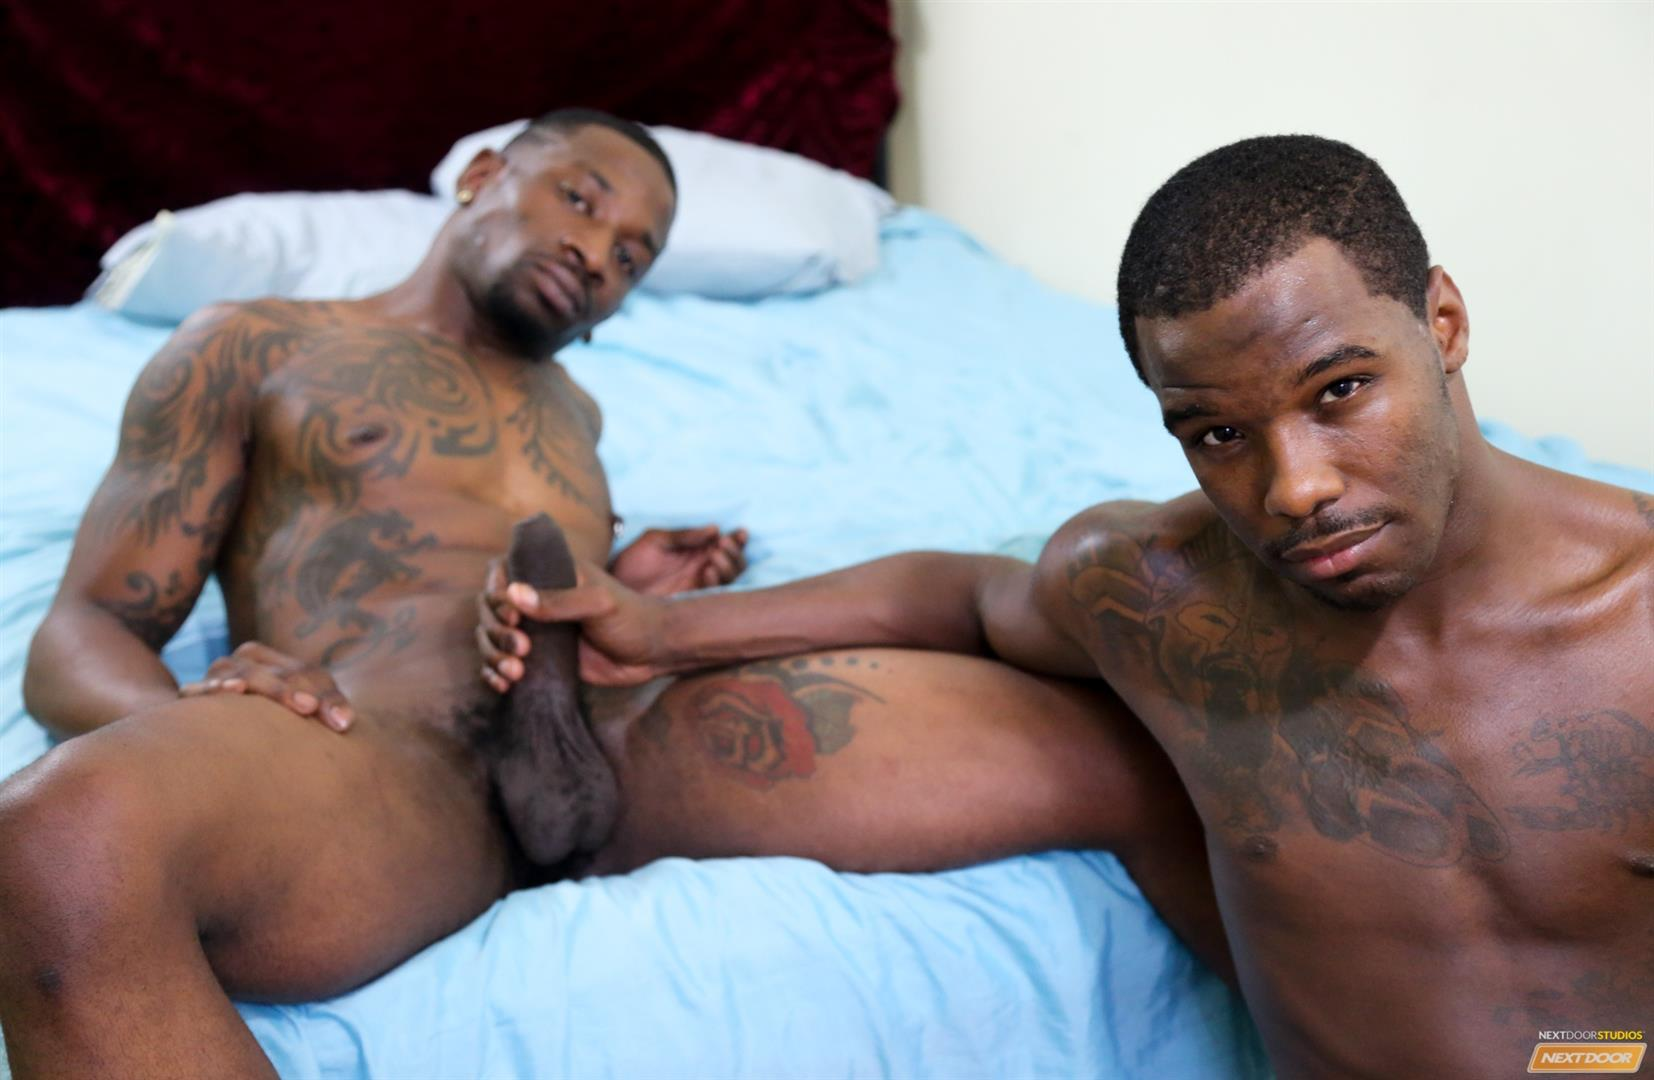 1, free video clips with hung Black guys, hard Thugs and dominant Afro American men.